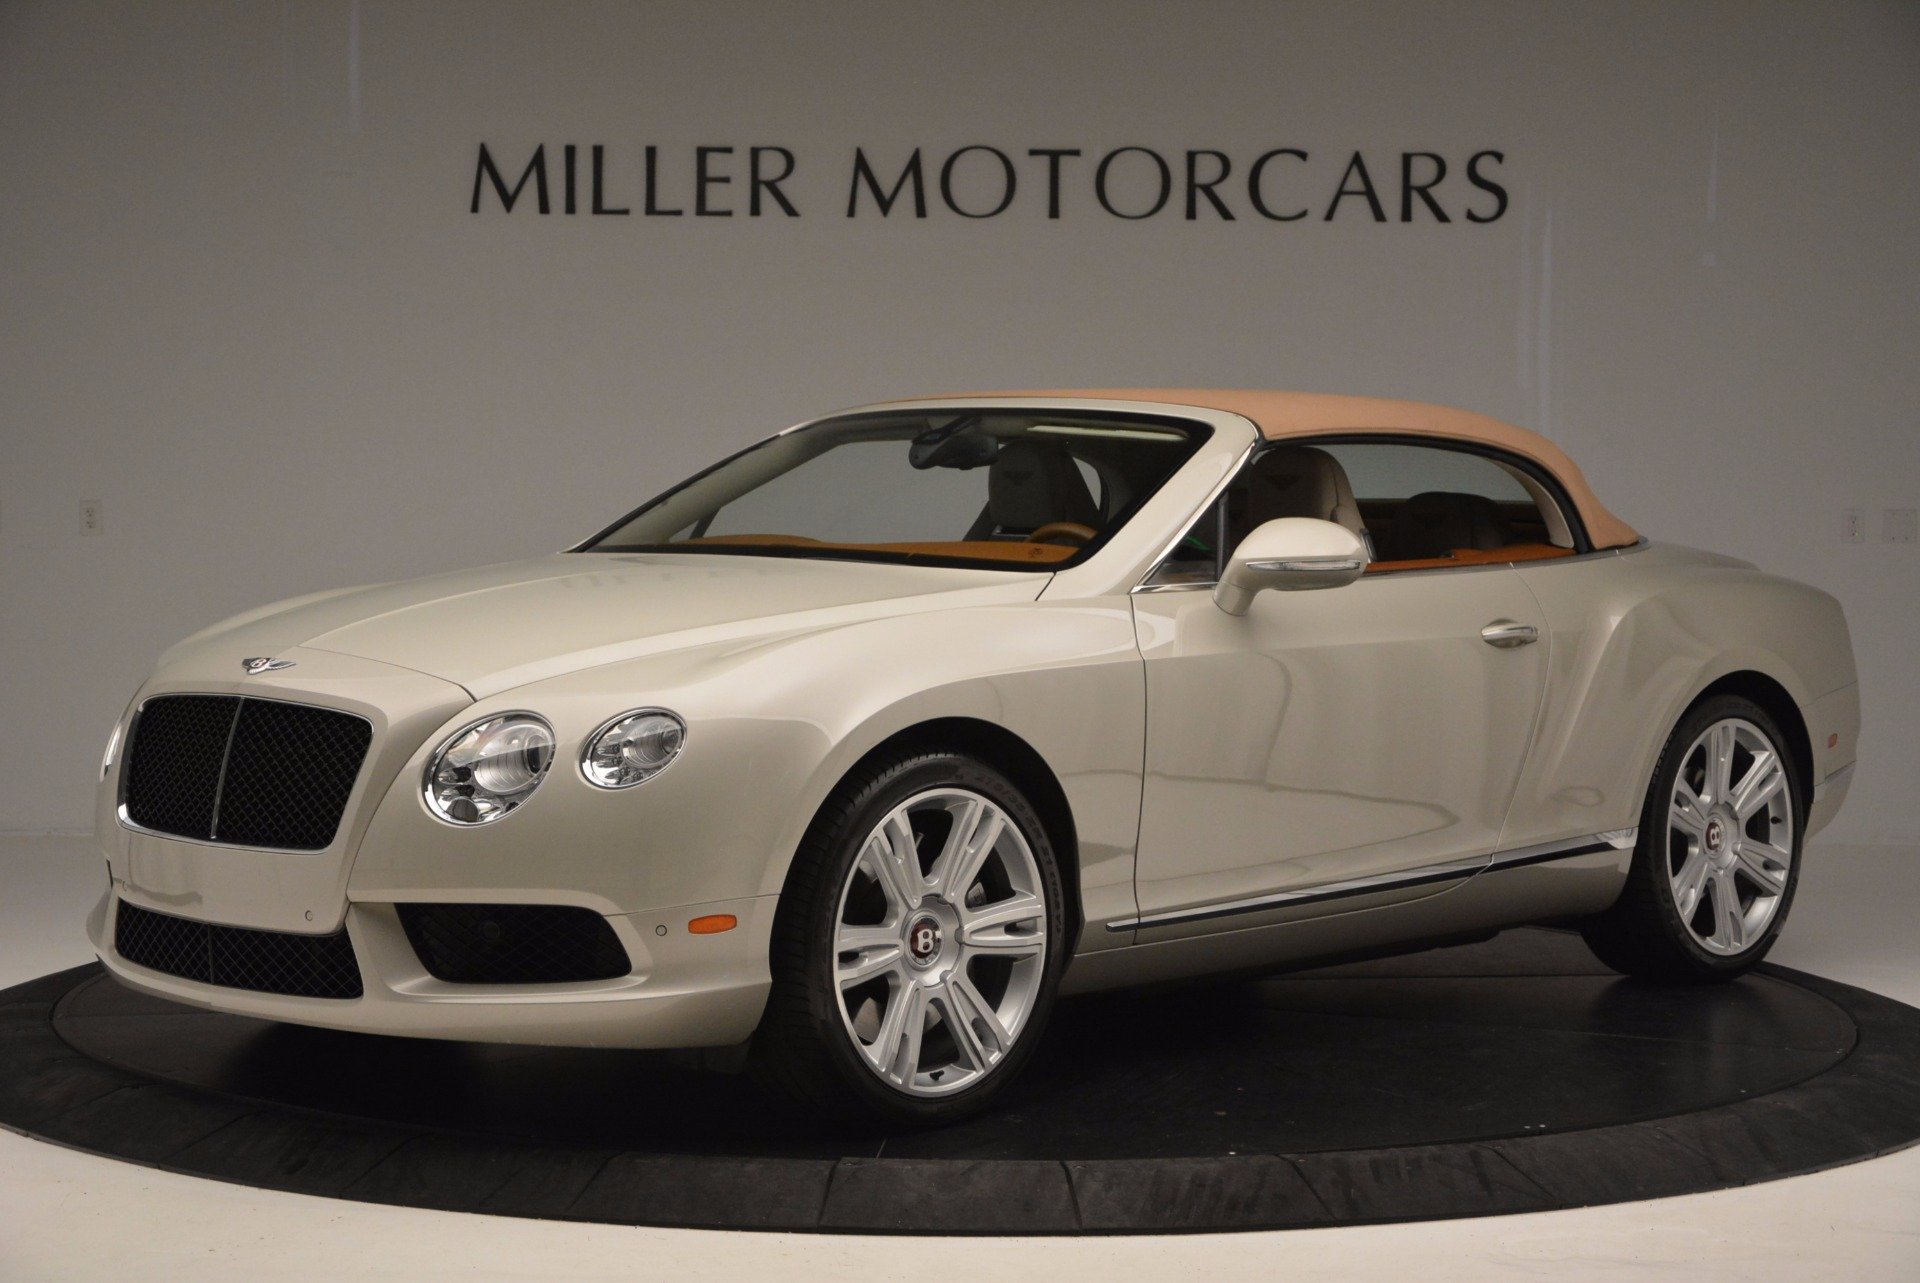 Used 2013 Bentley Continental GTC V8  For Sale In Greenwich, CT. Alfa Romeo of Greenwich, 7108 675_p15